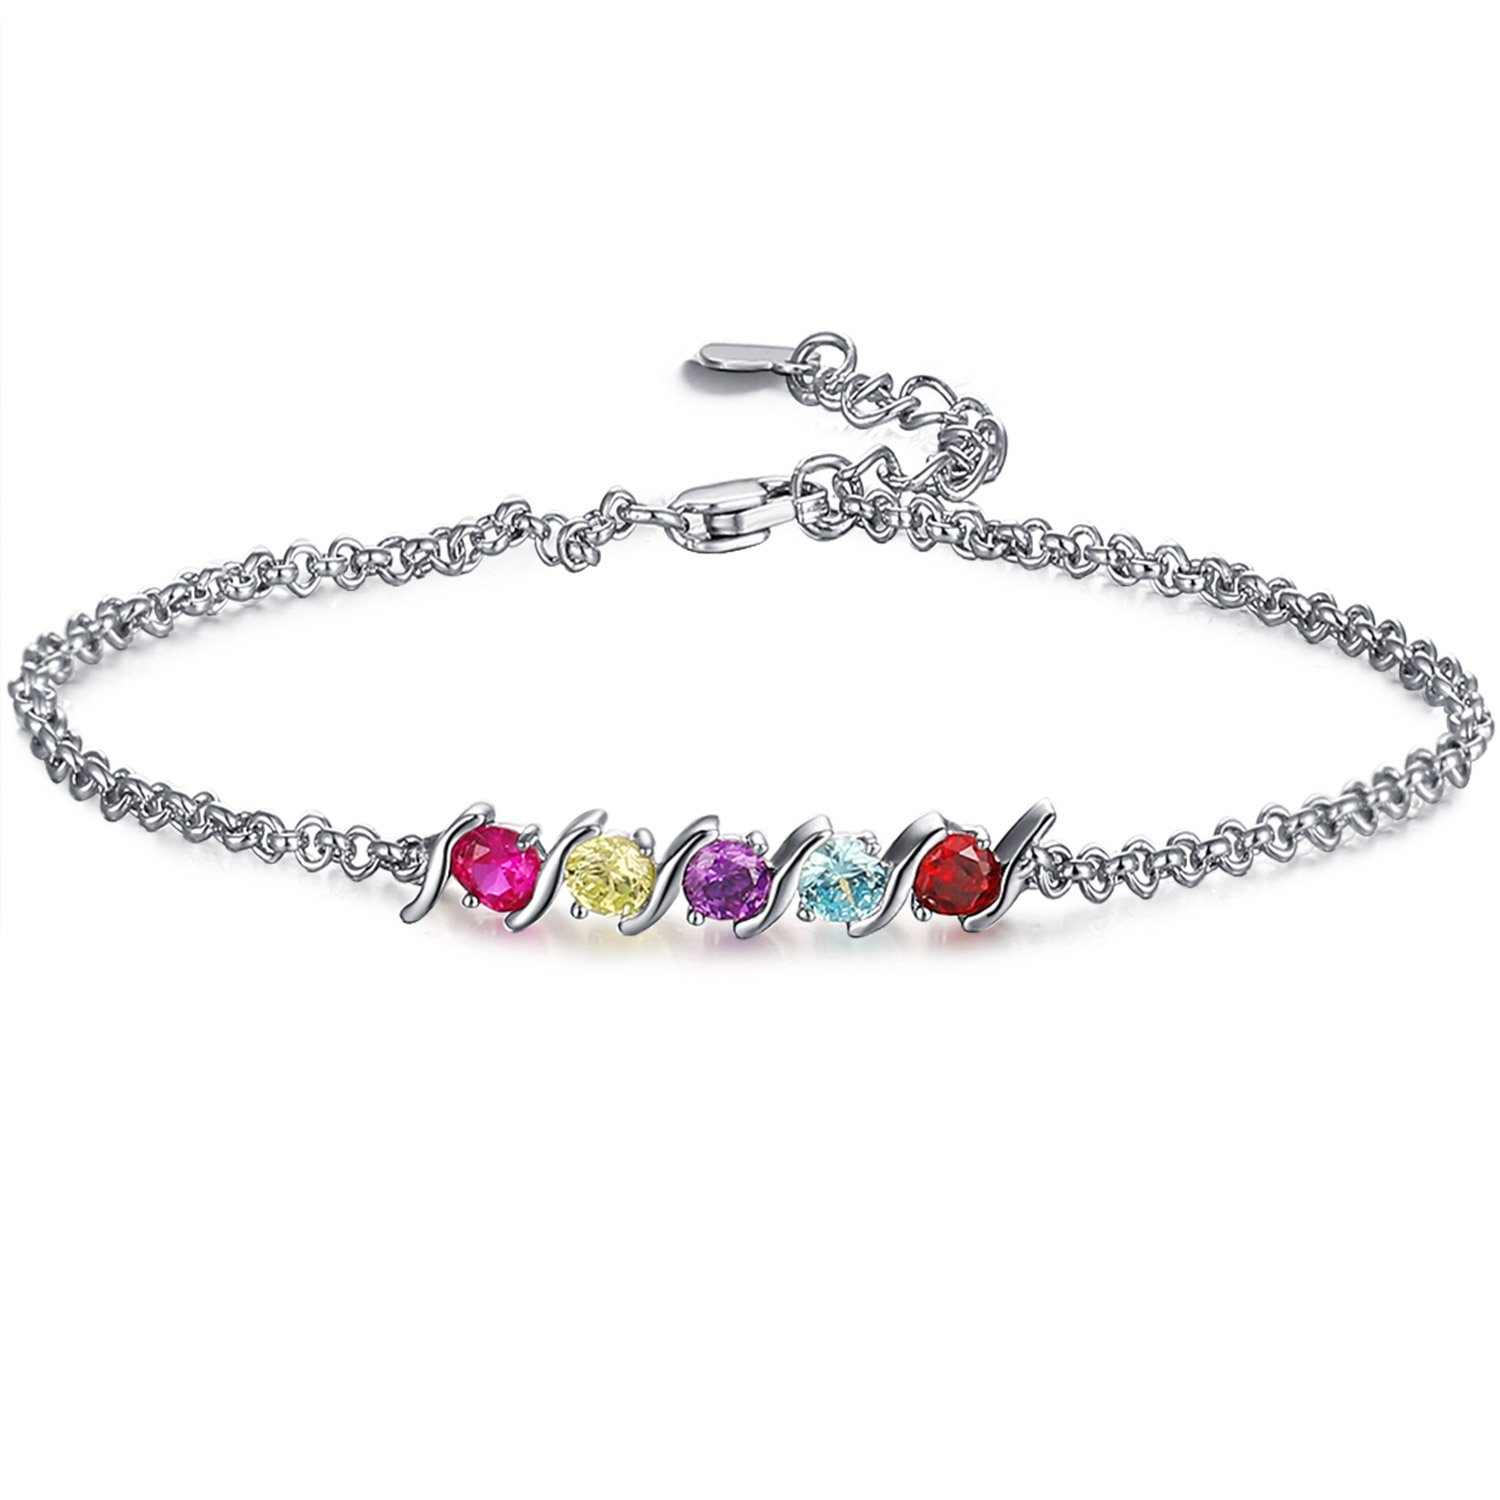 Caperci 925 Sterling Silver Round Shaped Multi-Gemstones Adjustable Link Tennis Bracelet for Women by Caperci (Image #1)